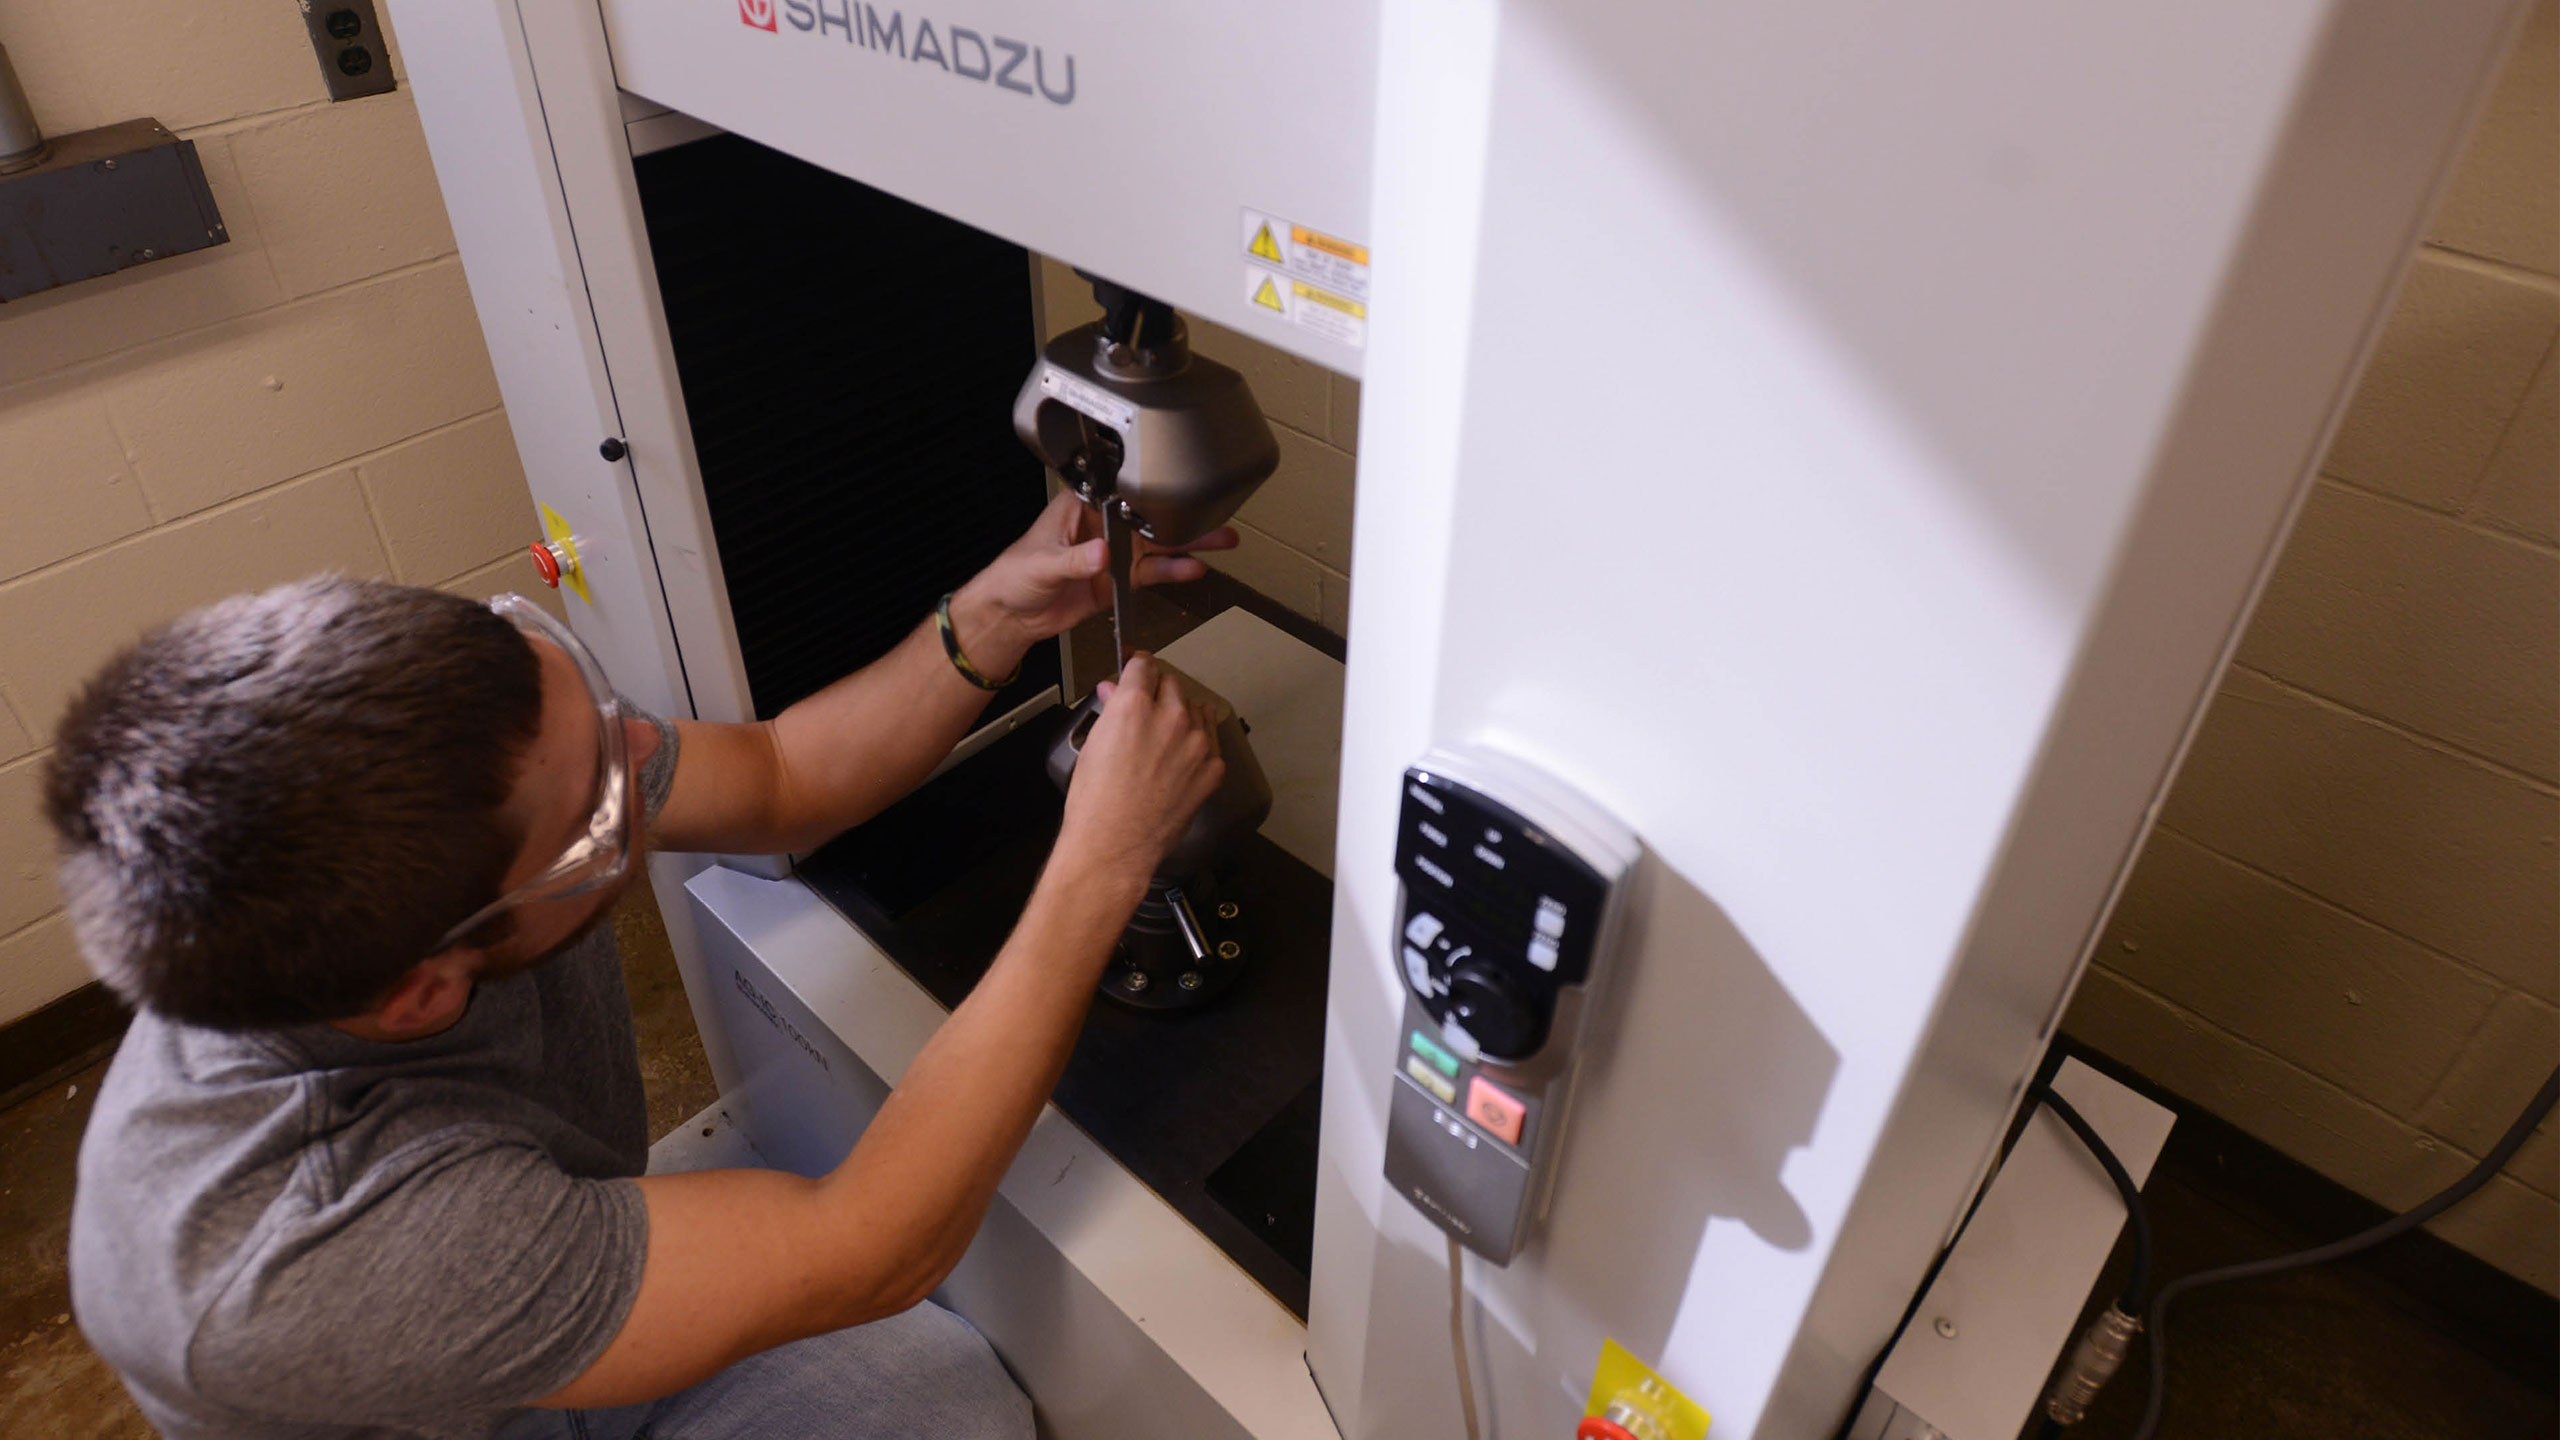 A student working with a piece of equipment.